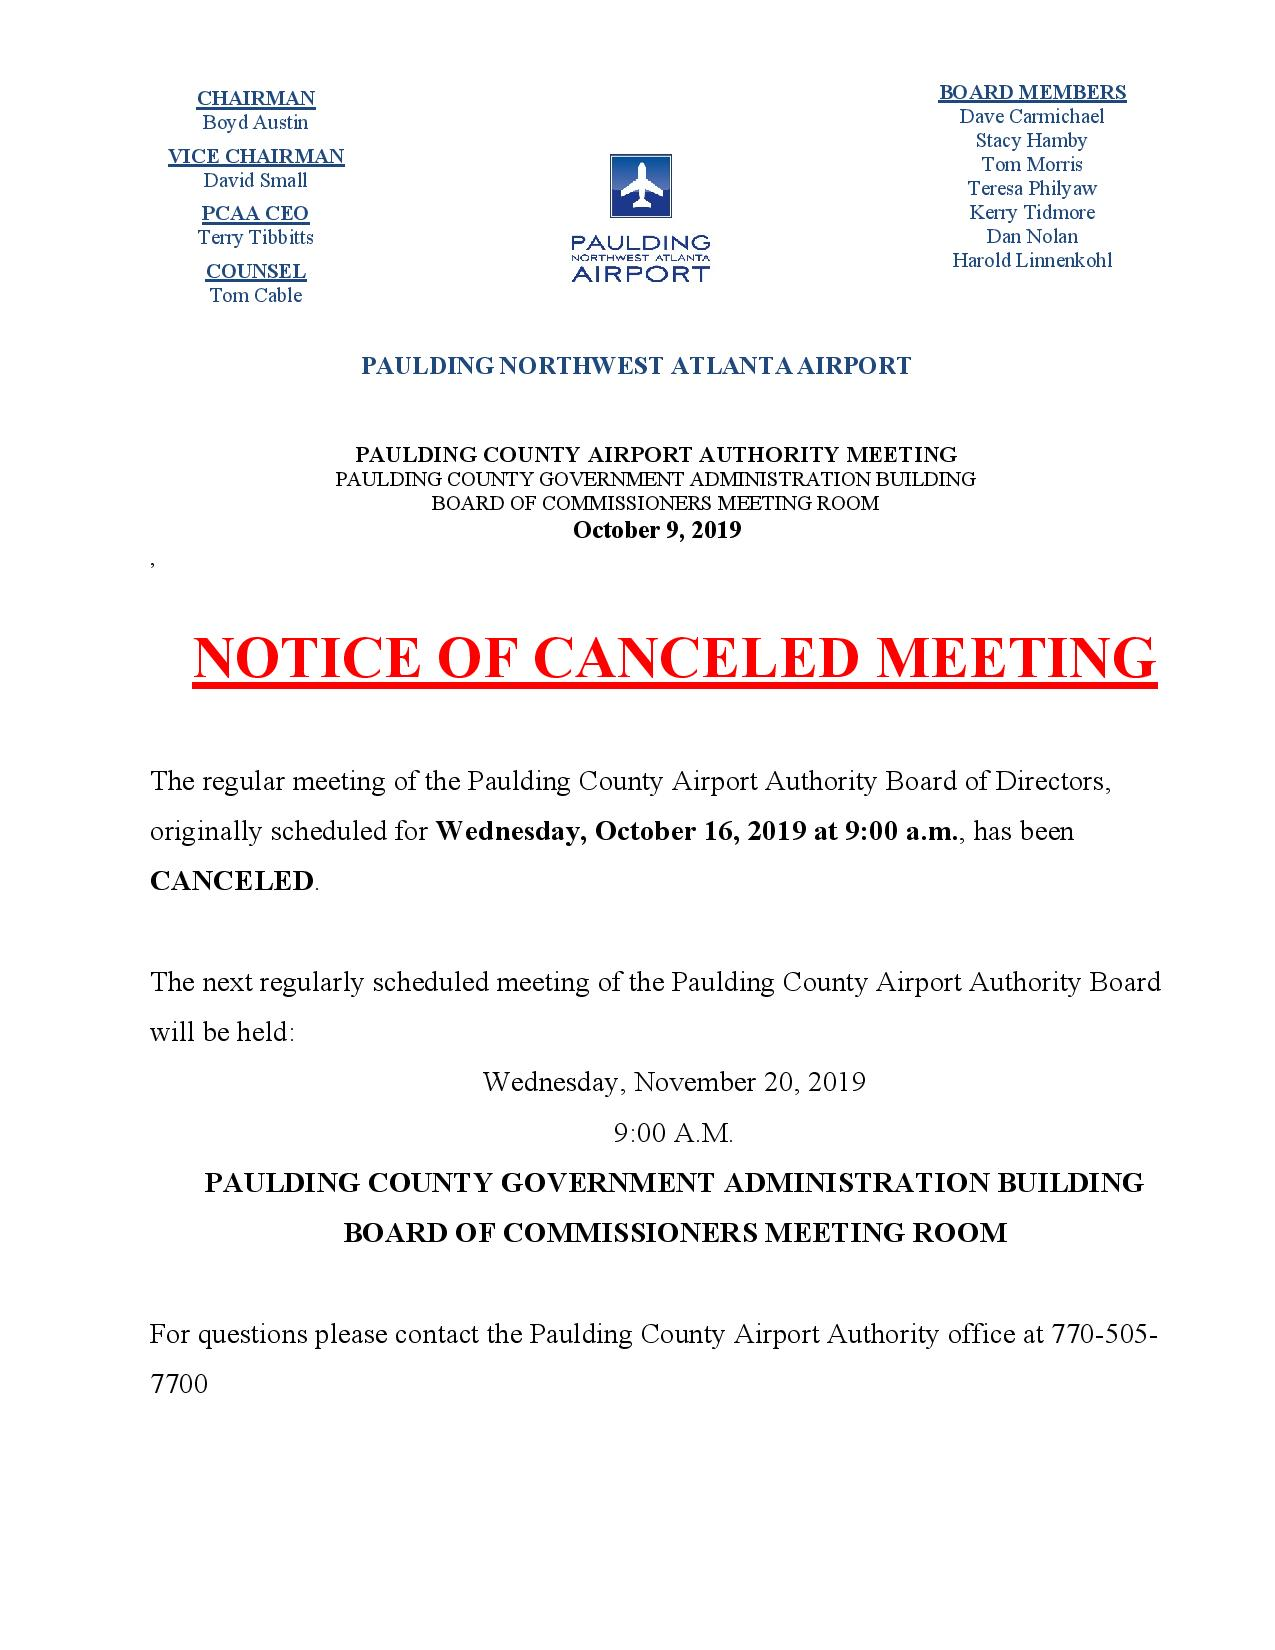 10.09.19 PCAA Notice of Canceled meeting